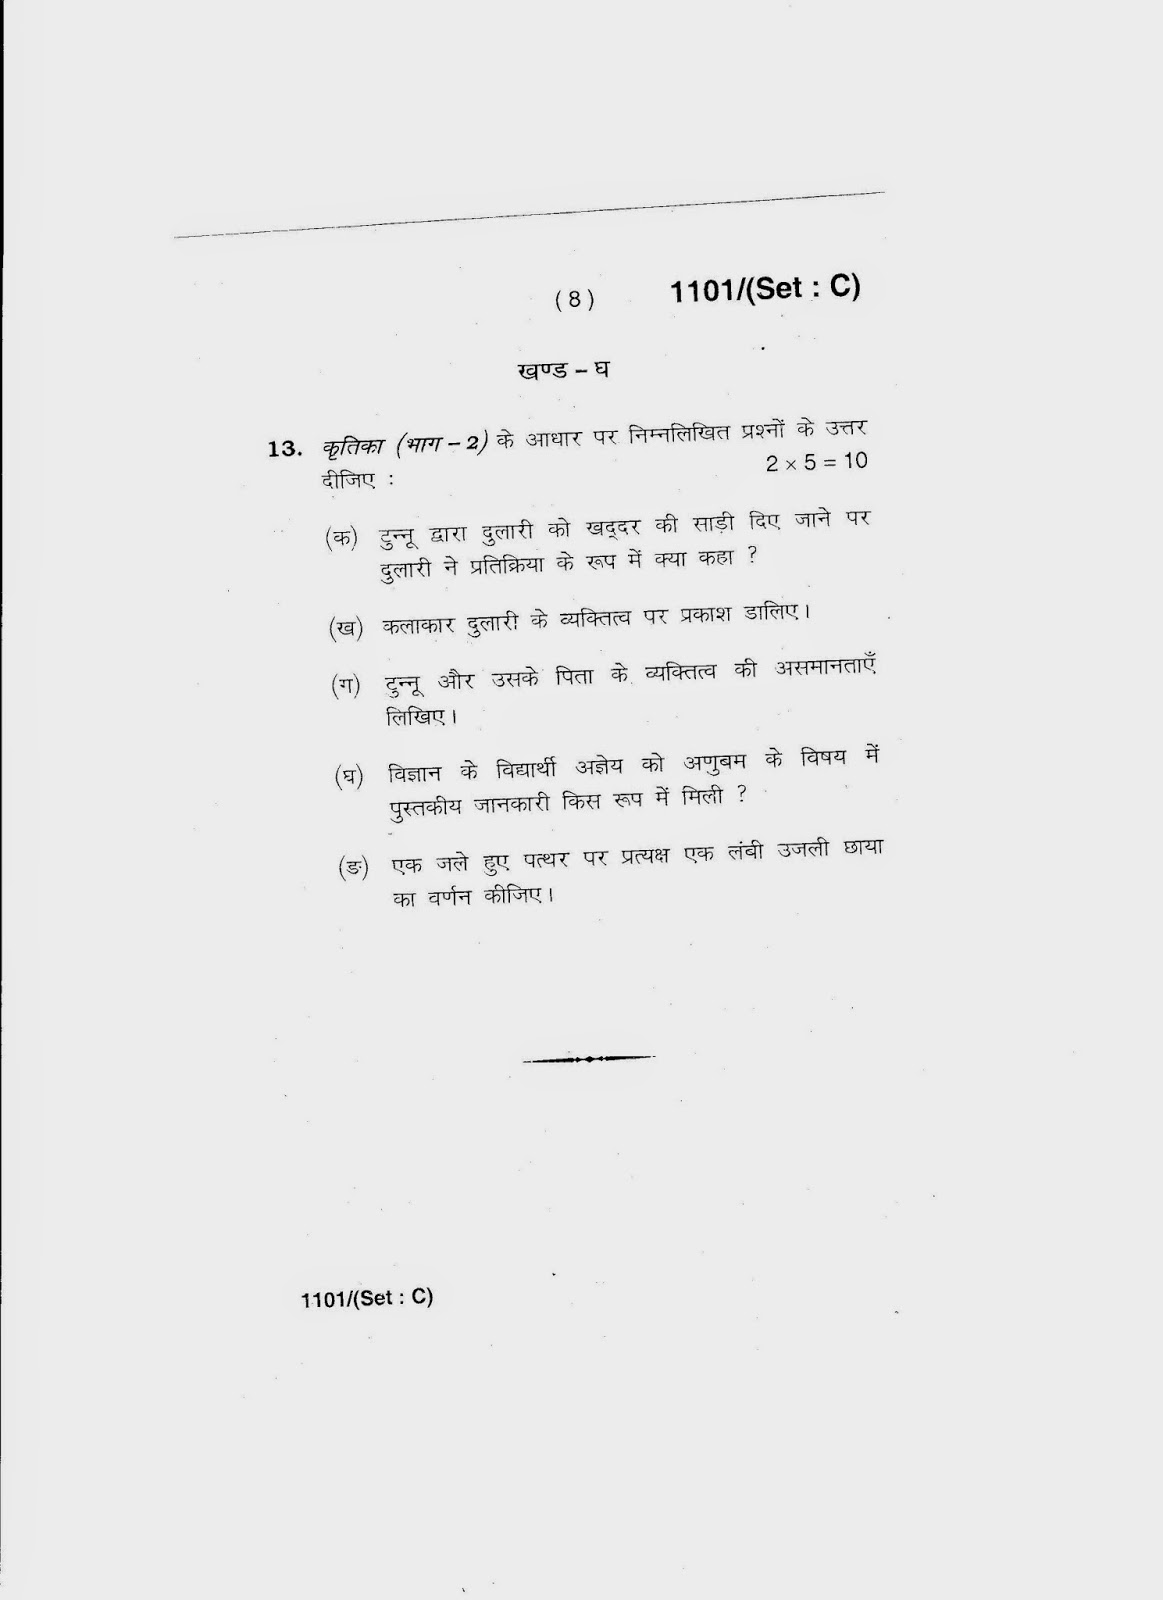 Previous year hindi question paper for class 10th hbse second previous year hindi question paper for class 10th hbse second semester set c malvernweather Images